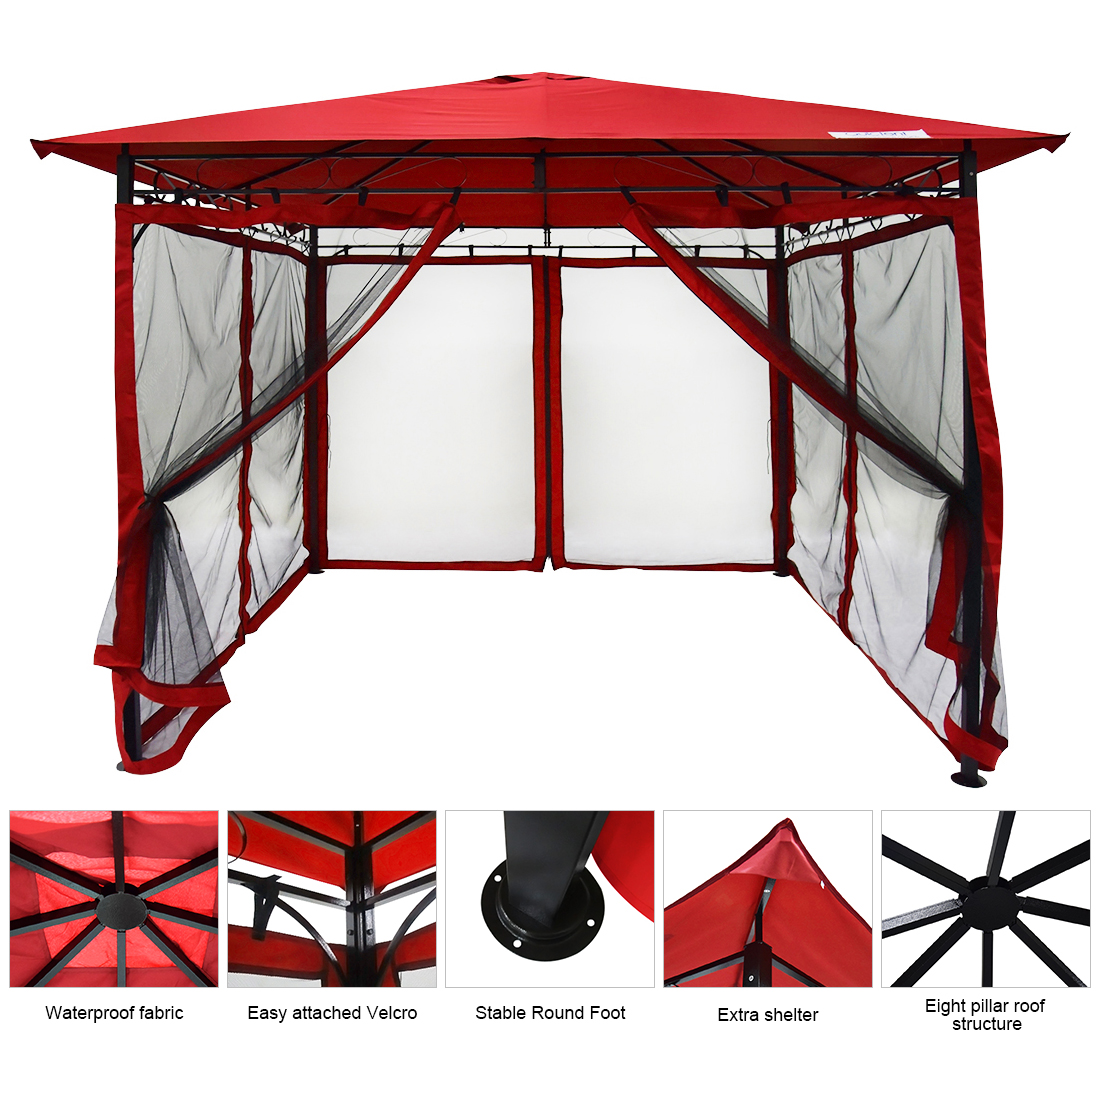 Quictent 10x10 ft Metal Gazebo Screened Grill Gazebo Canopy Backyard Shelter Waterproof